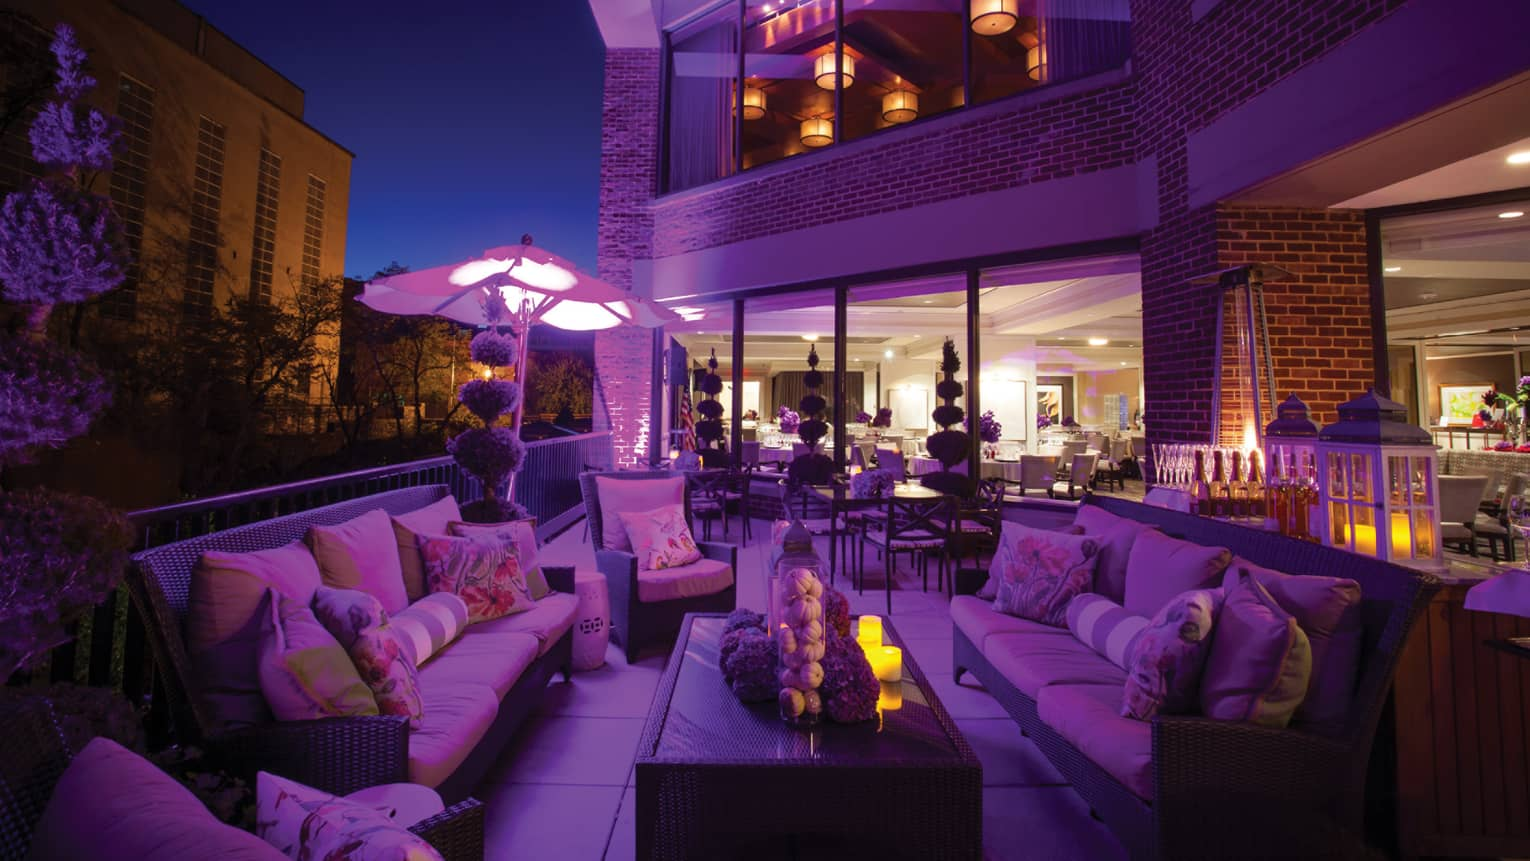 Outdoor Seasons at night with patio banquette lounge chairs, table and sofa, purple hue